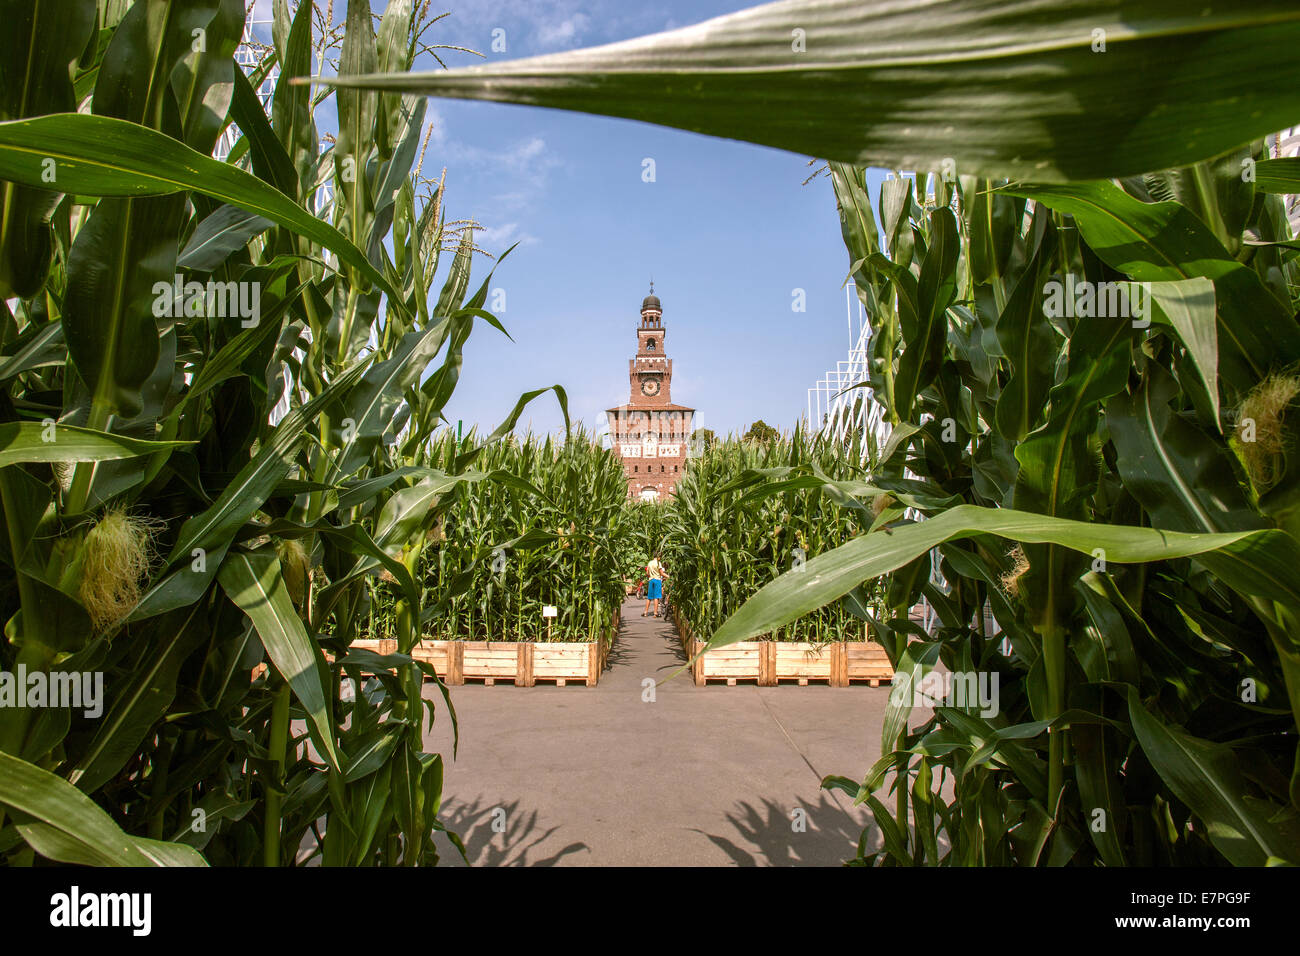 Milan, Expo 2015, EXPOGATE, Fair Universal, Sforzesco castle, city, gate, infopoint, corn flower beds, corn leaves, - Stock Image